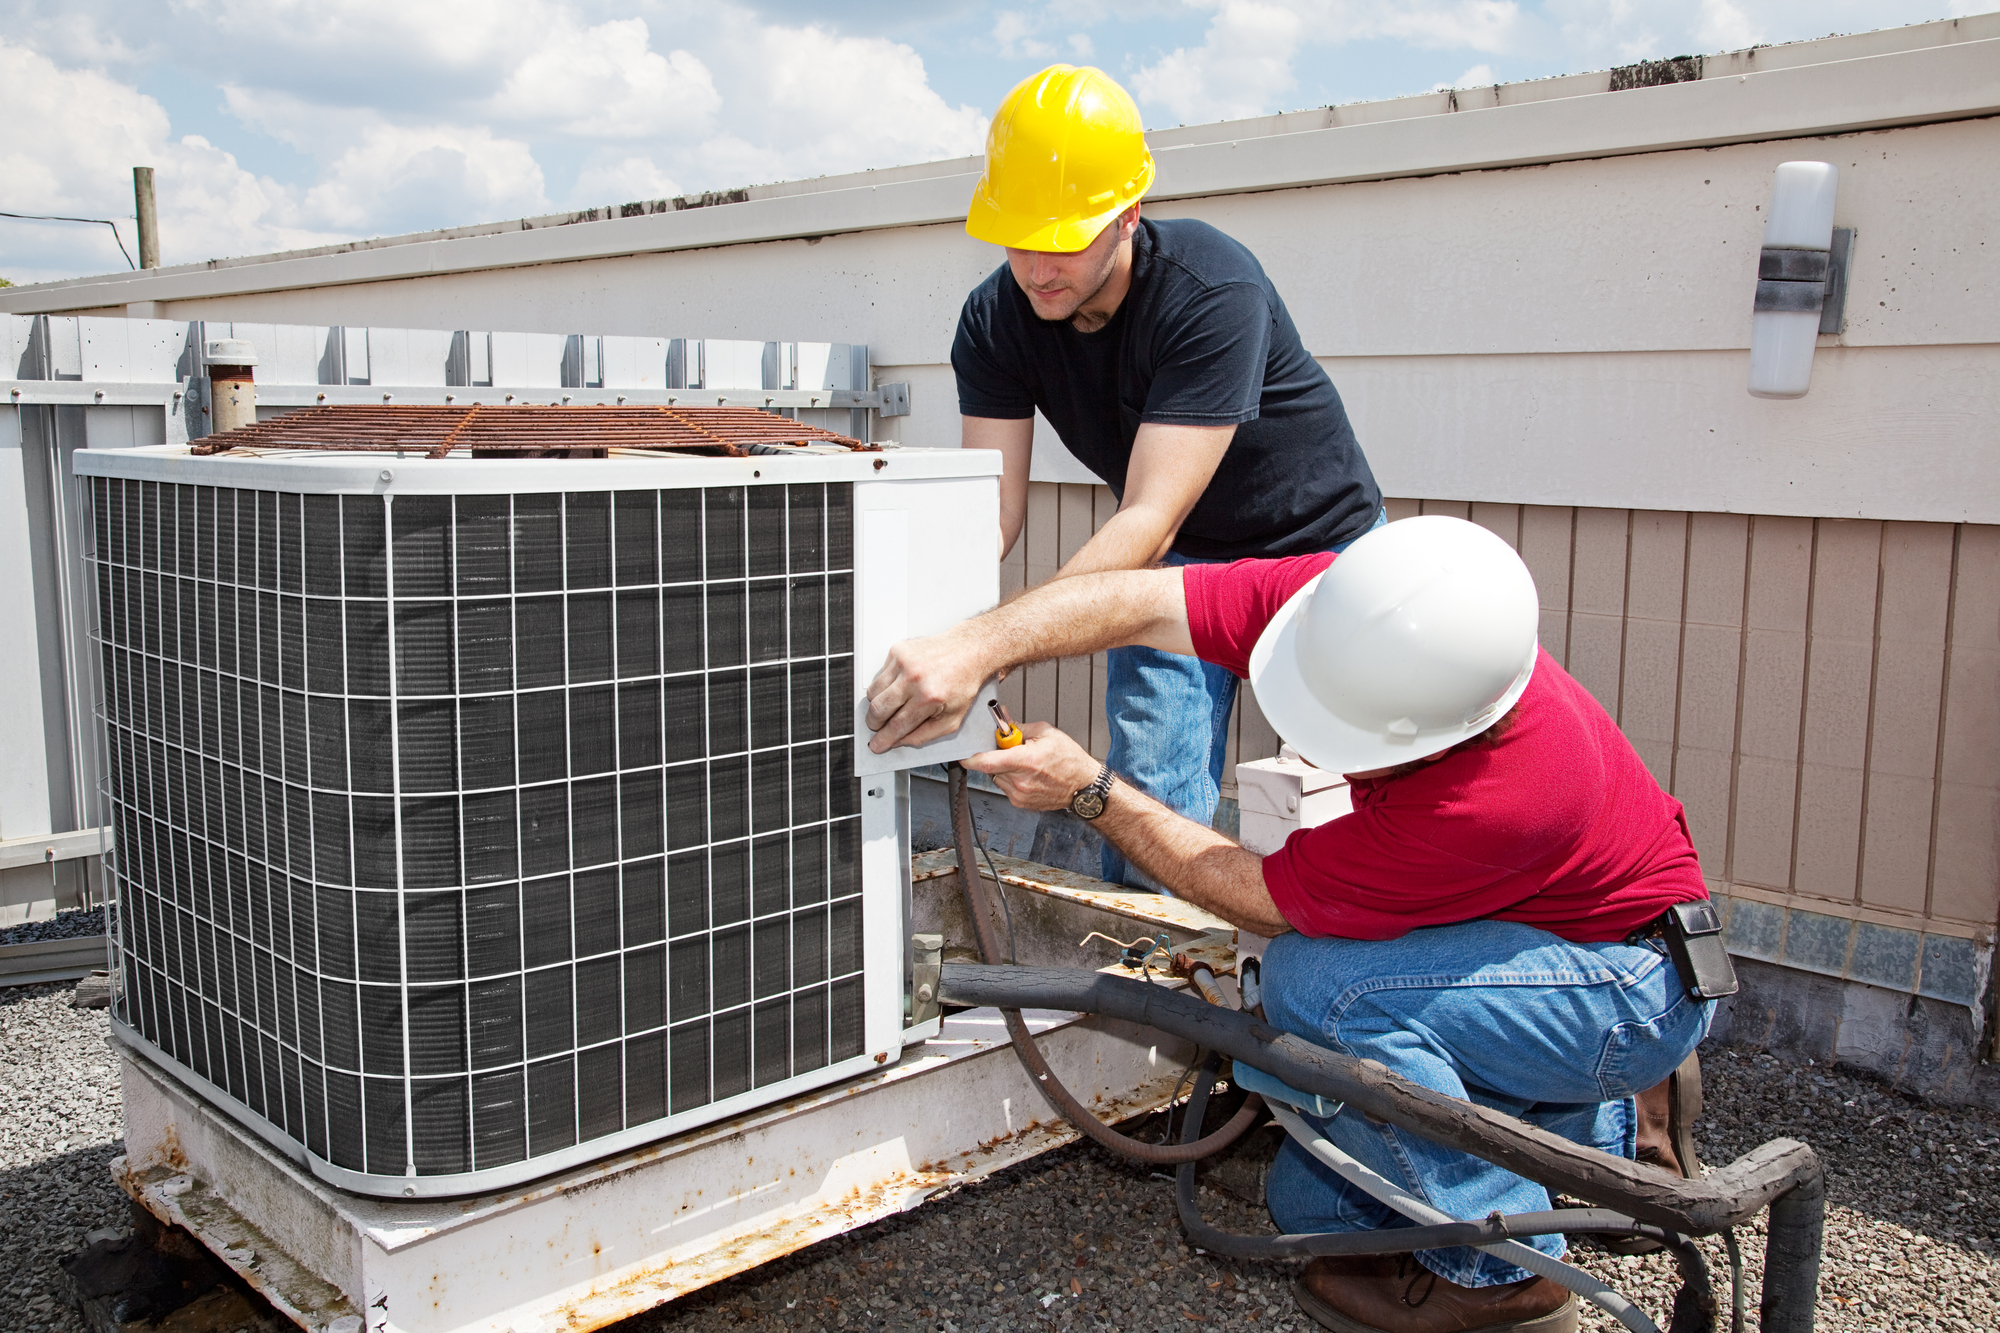 Furnace Repair Maple Grove, Furnace Repair, Furnace Replacement Maple Grove, Furnace Replacement, AC Repair Maple Grove, AC Repair, AC Replacement Maple Grove, AC Replacement, AC Furnace Tune-Up Maple Grove, AC Furnace Tune Up, 24 Hour Furnace Repair Maple Grove, 24 Hour Heating and Air Conditioning Repair Near Me Maple Grove